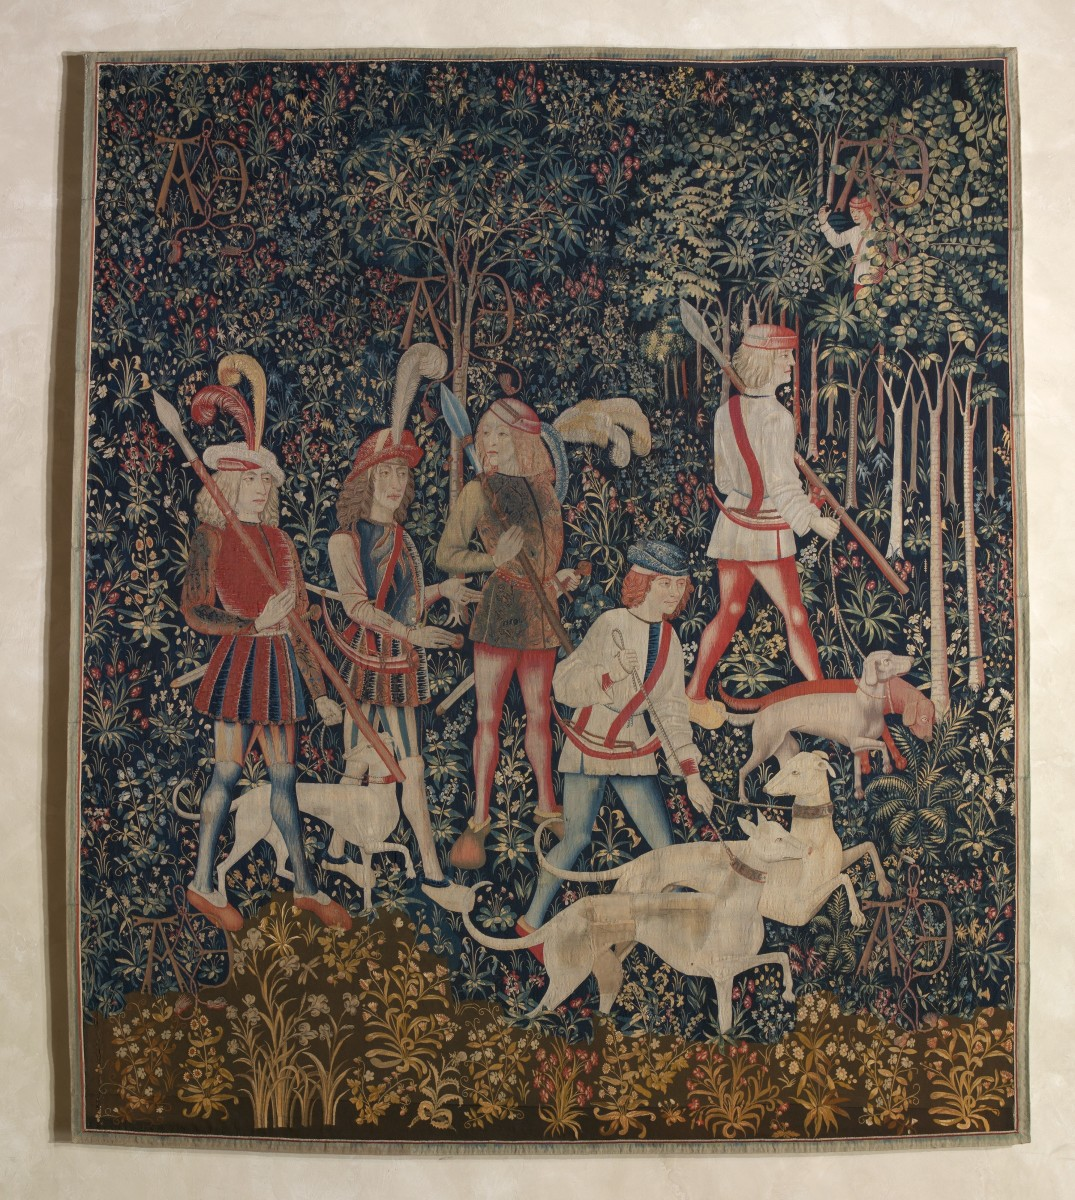 From The Unicorn 467637 Tapestries